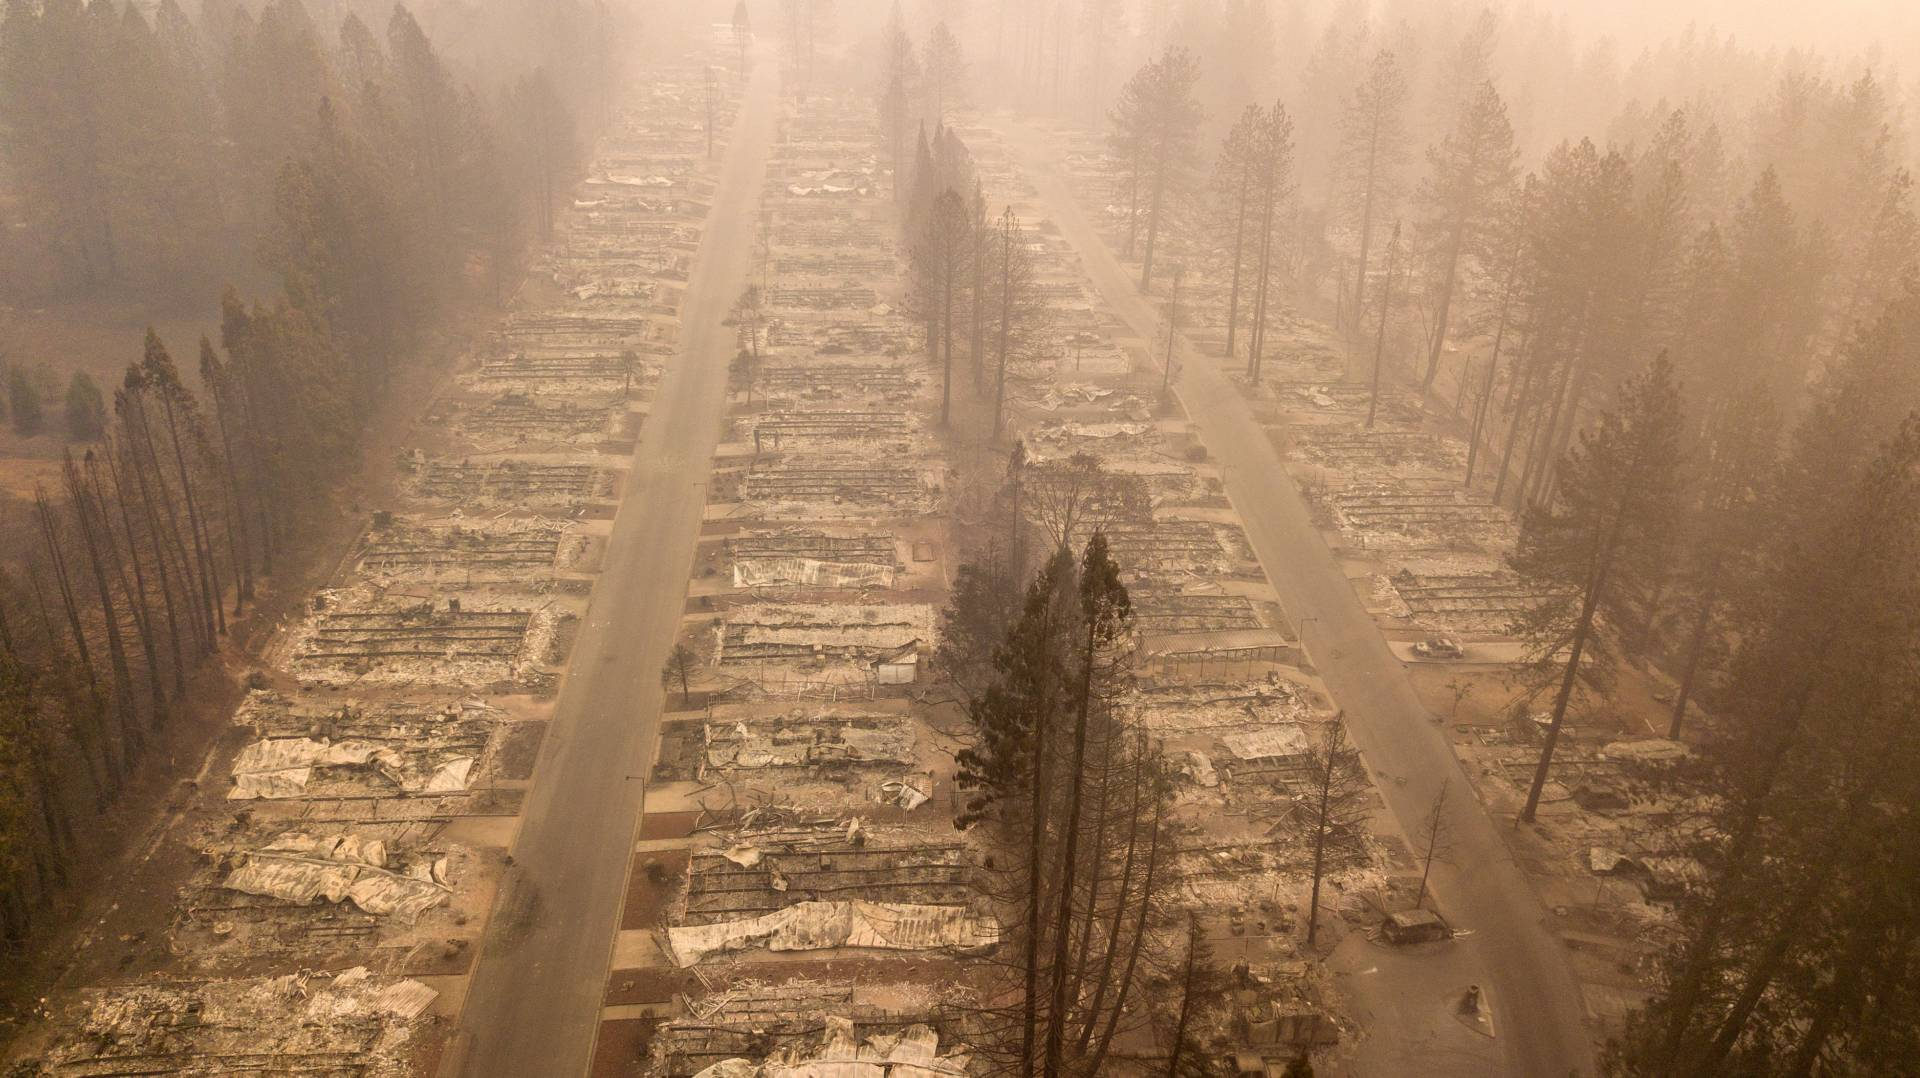 The Camp Fire consumed entire neighborhoods in Paradise, California. A massive federal report says climate change is contributing to larger wildfires as well as other deadly extreme weather. JOSH EDELSON/AFP/Getty Images